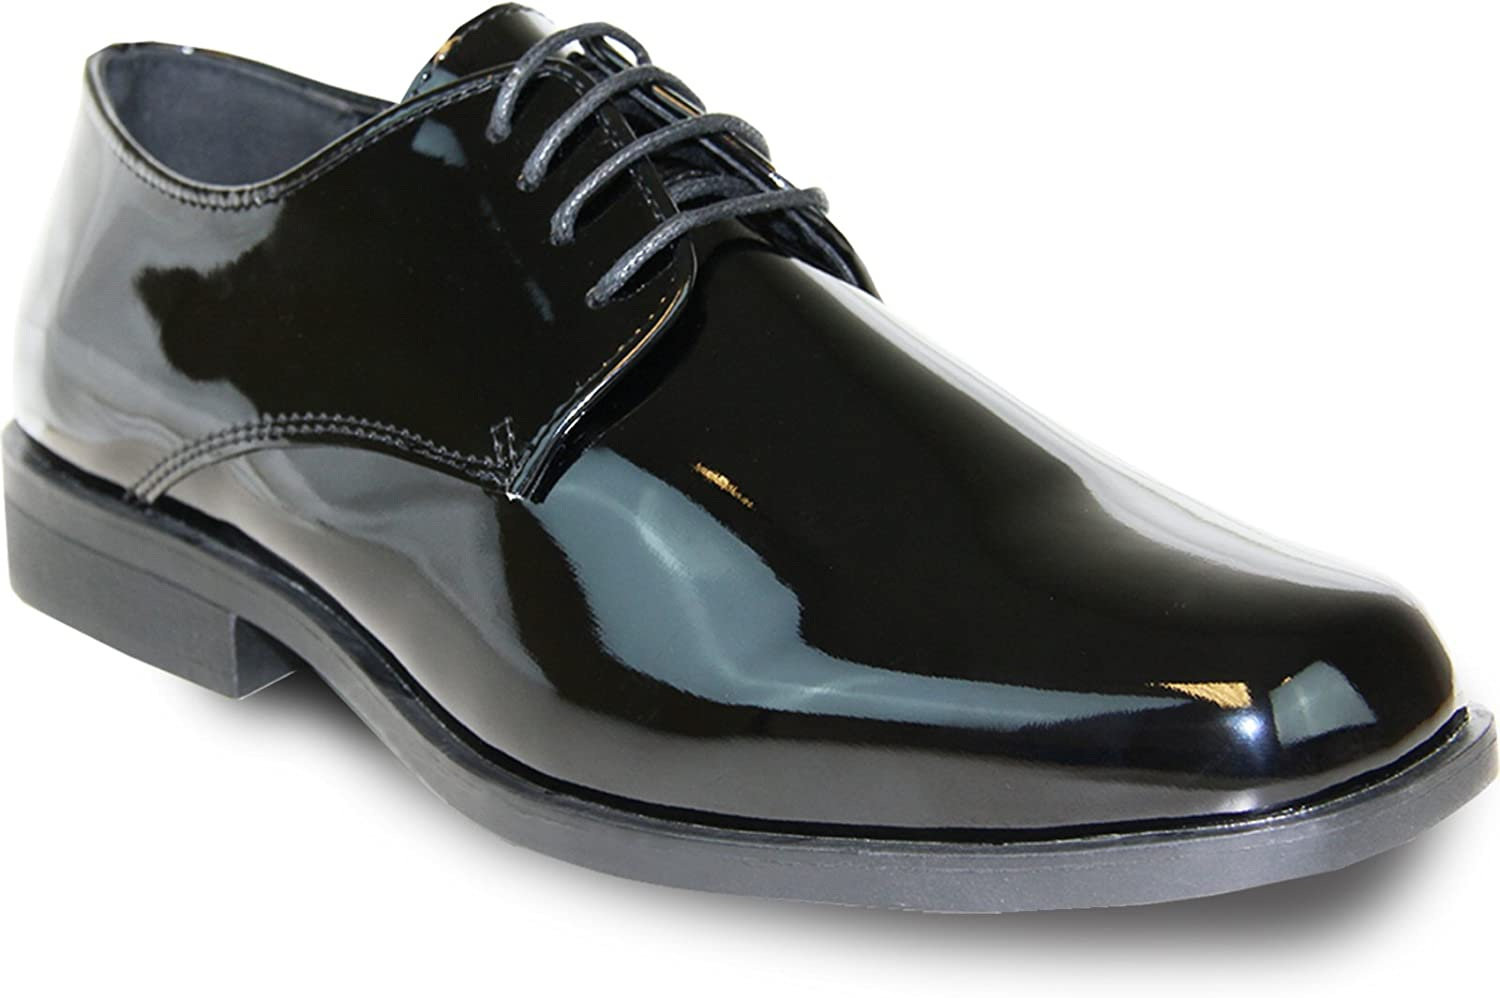 VANGELO Men's Tuxedo Shoes TUX-1 New Shipping Free Shipping Free Spring new work one after another Dress Wrinkle Formal